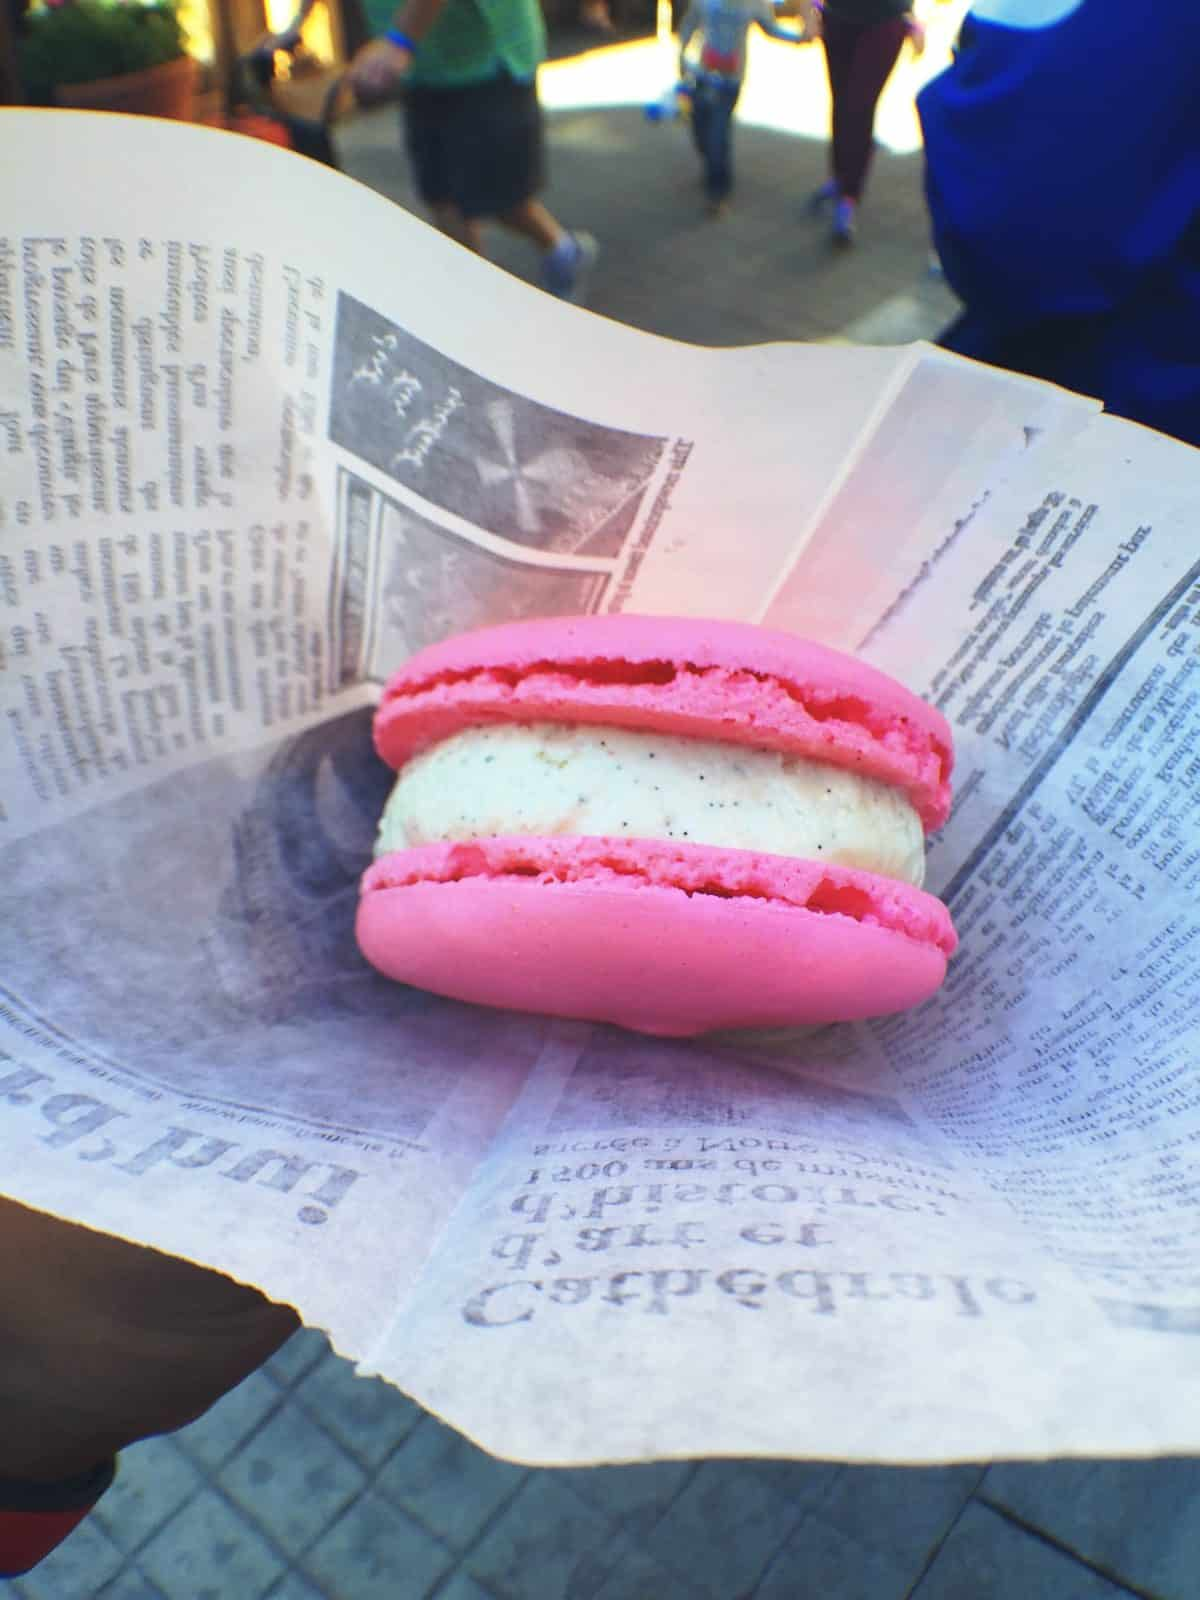 Strawberries and Cream Macaroon Ice Cream Sandwich